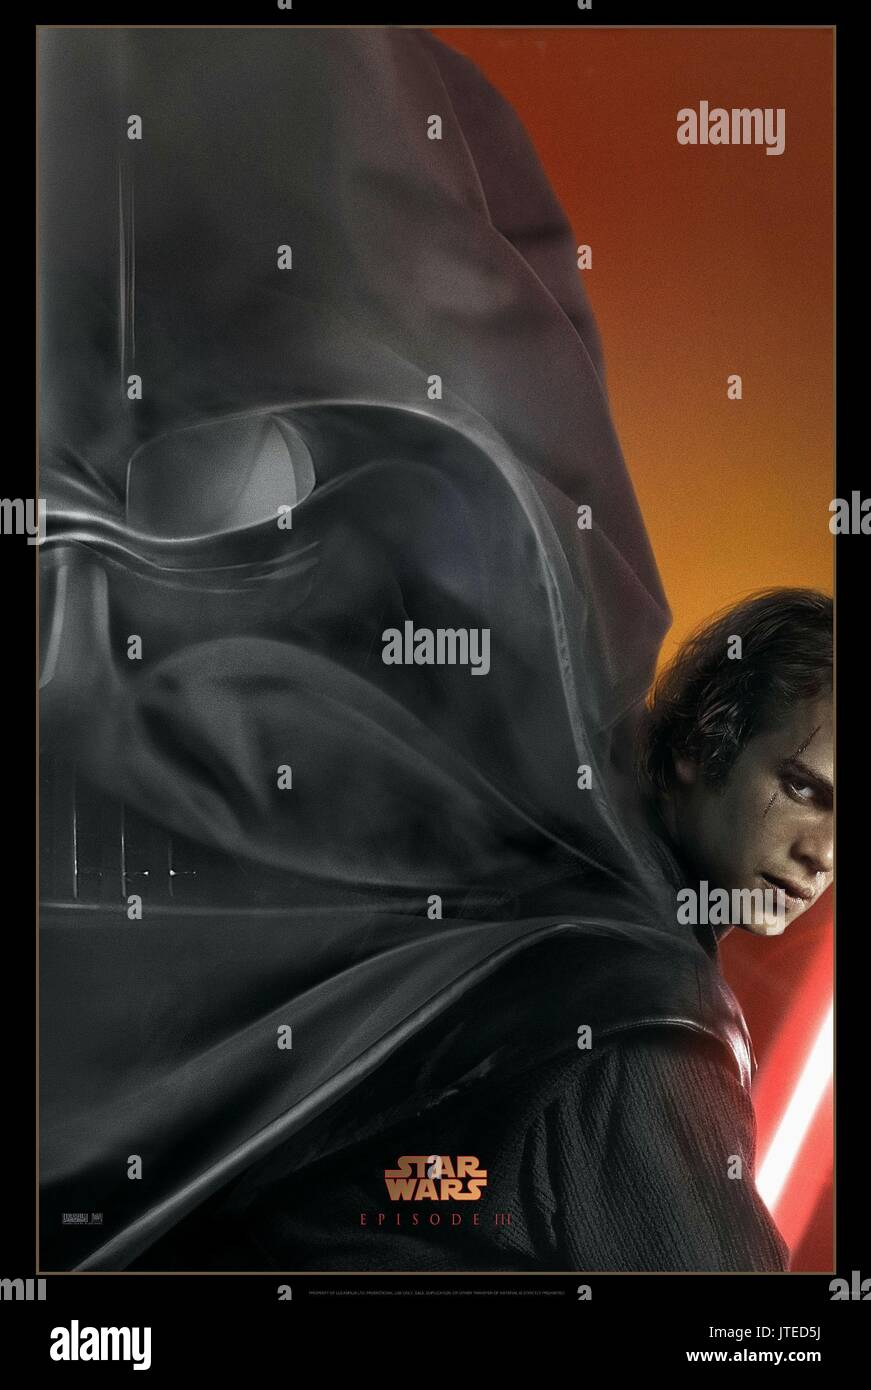 Darth Vader Hayden Christensen Star Wars Episode Iii Revenge Of Stock Photo Alamy